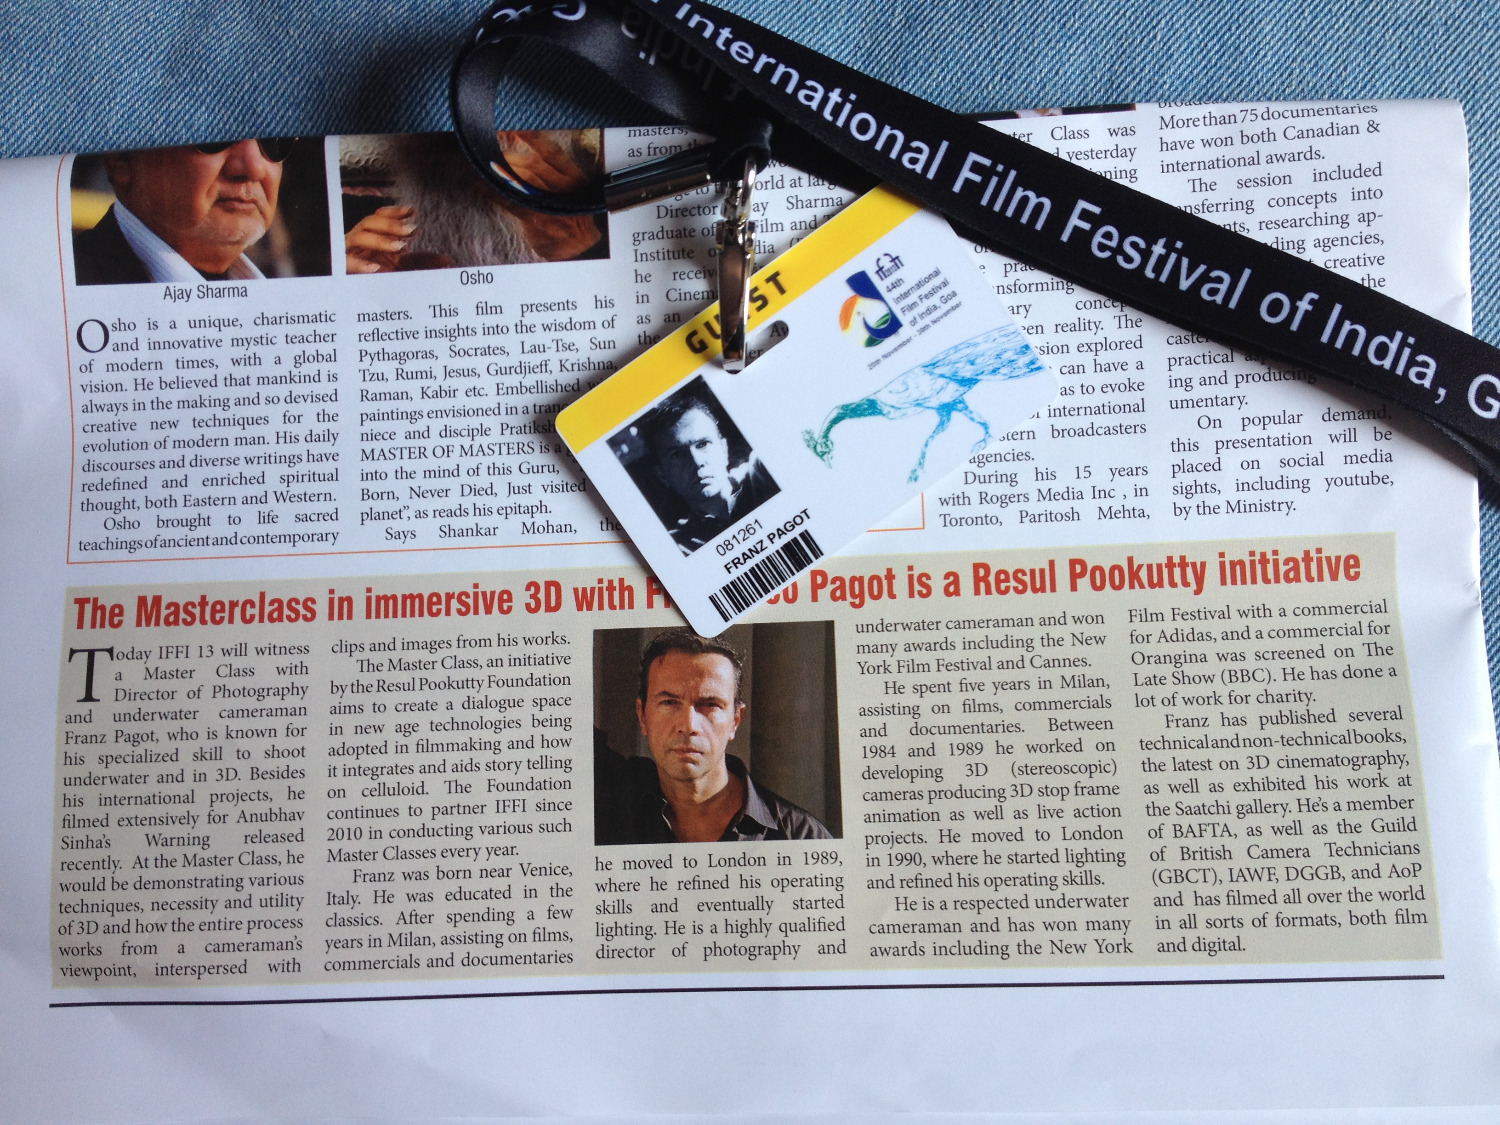 India National Film Festival